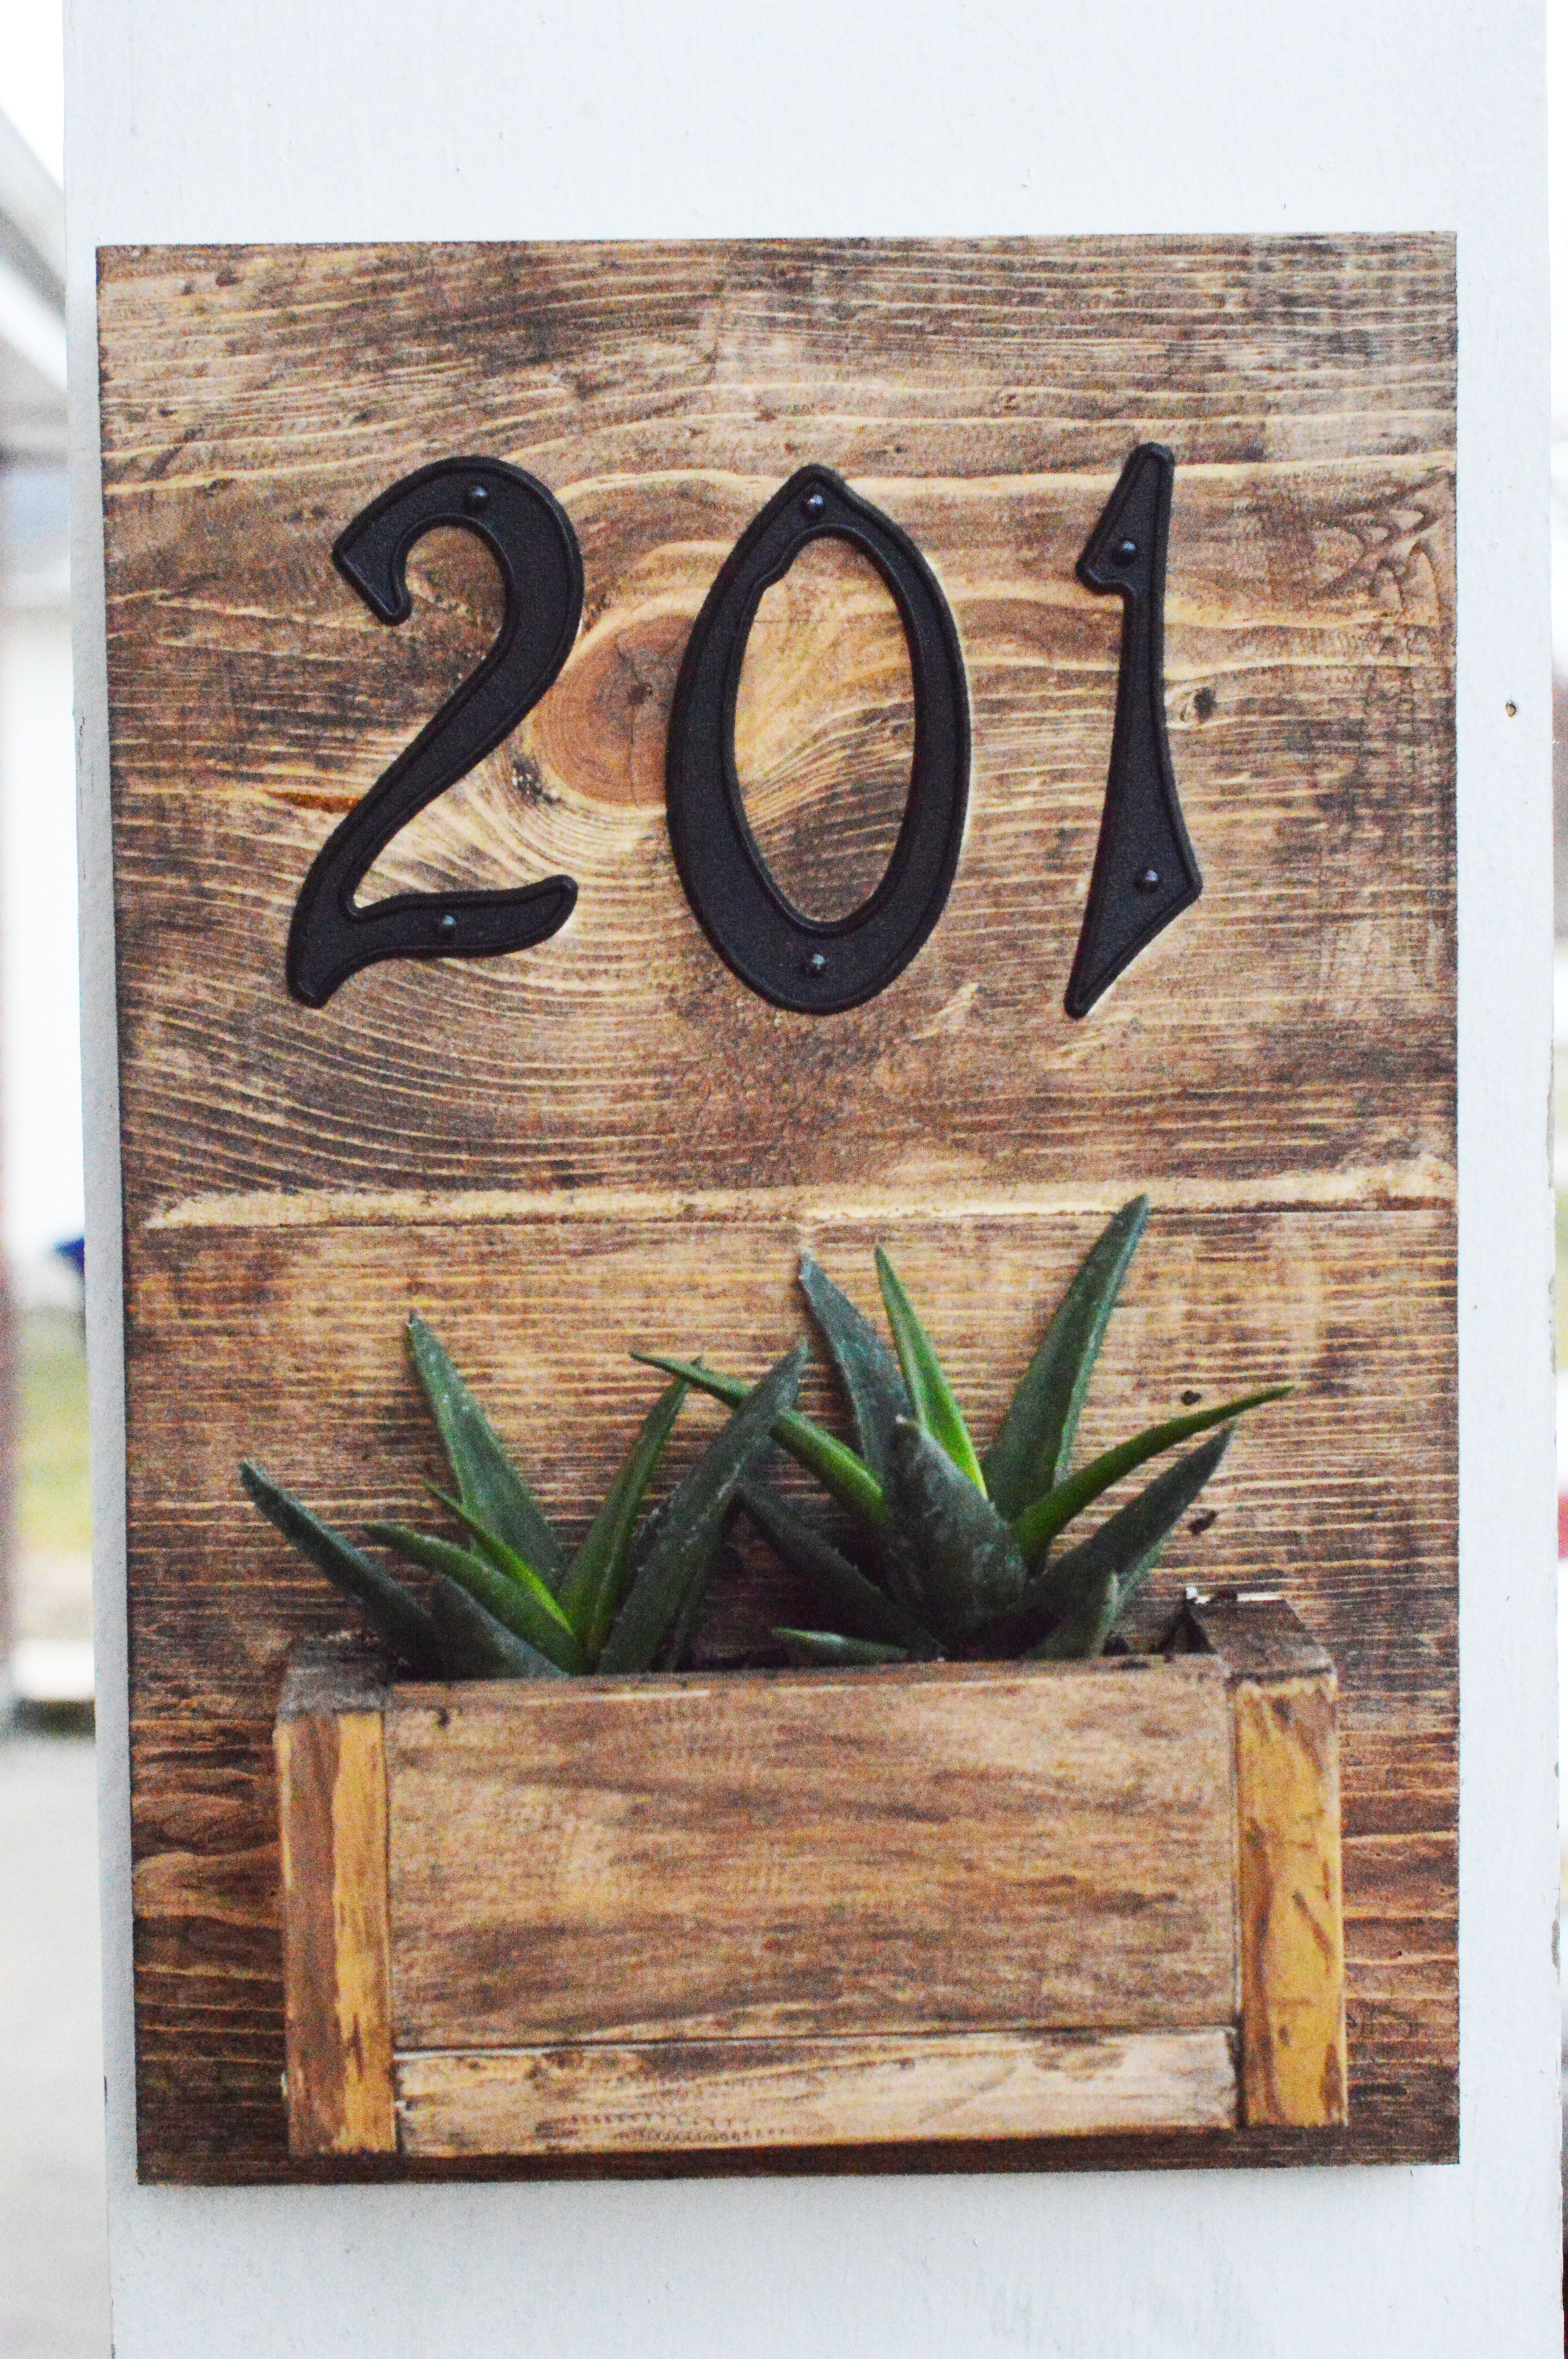 DIY Rustic Address Hanging Planter Box Sign with Street